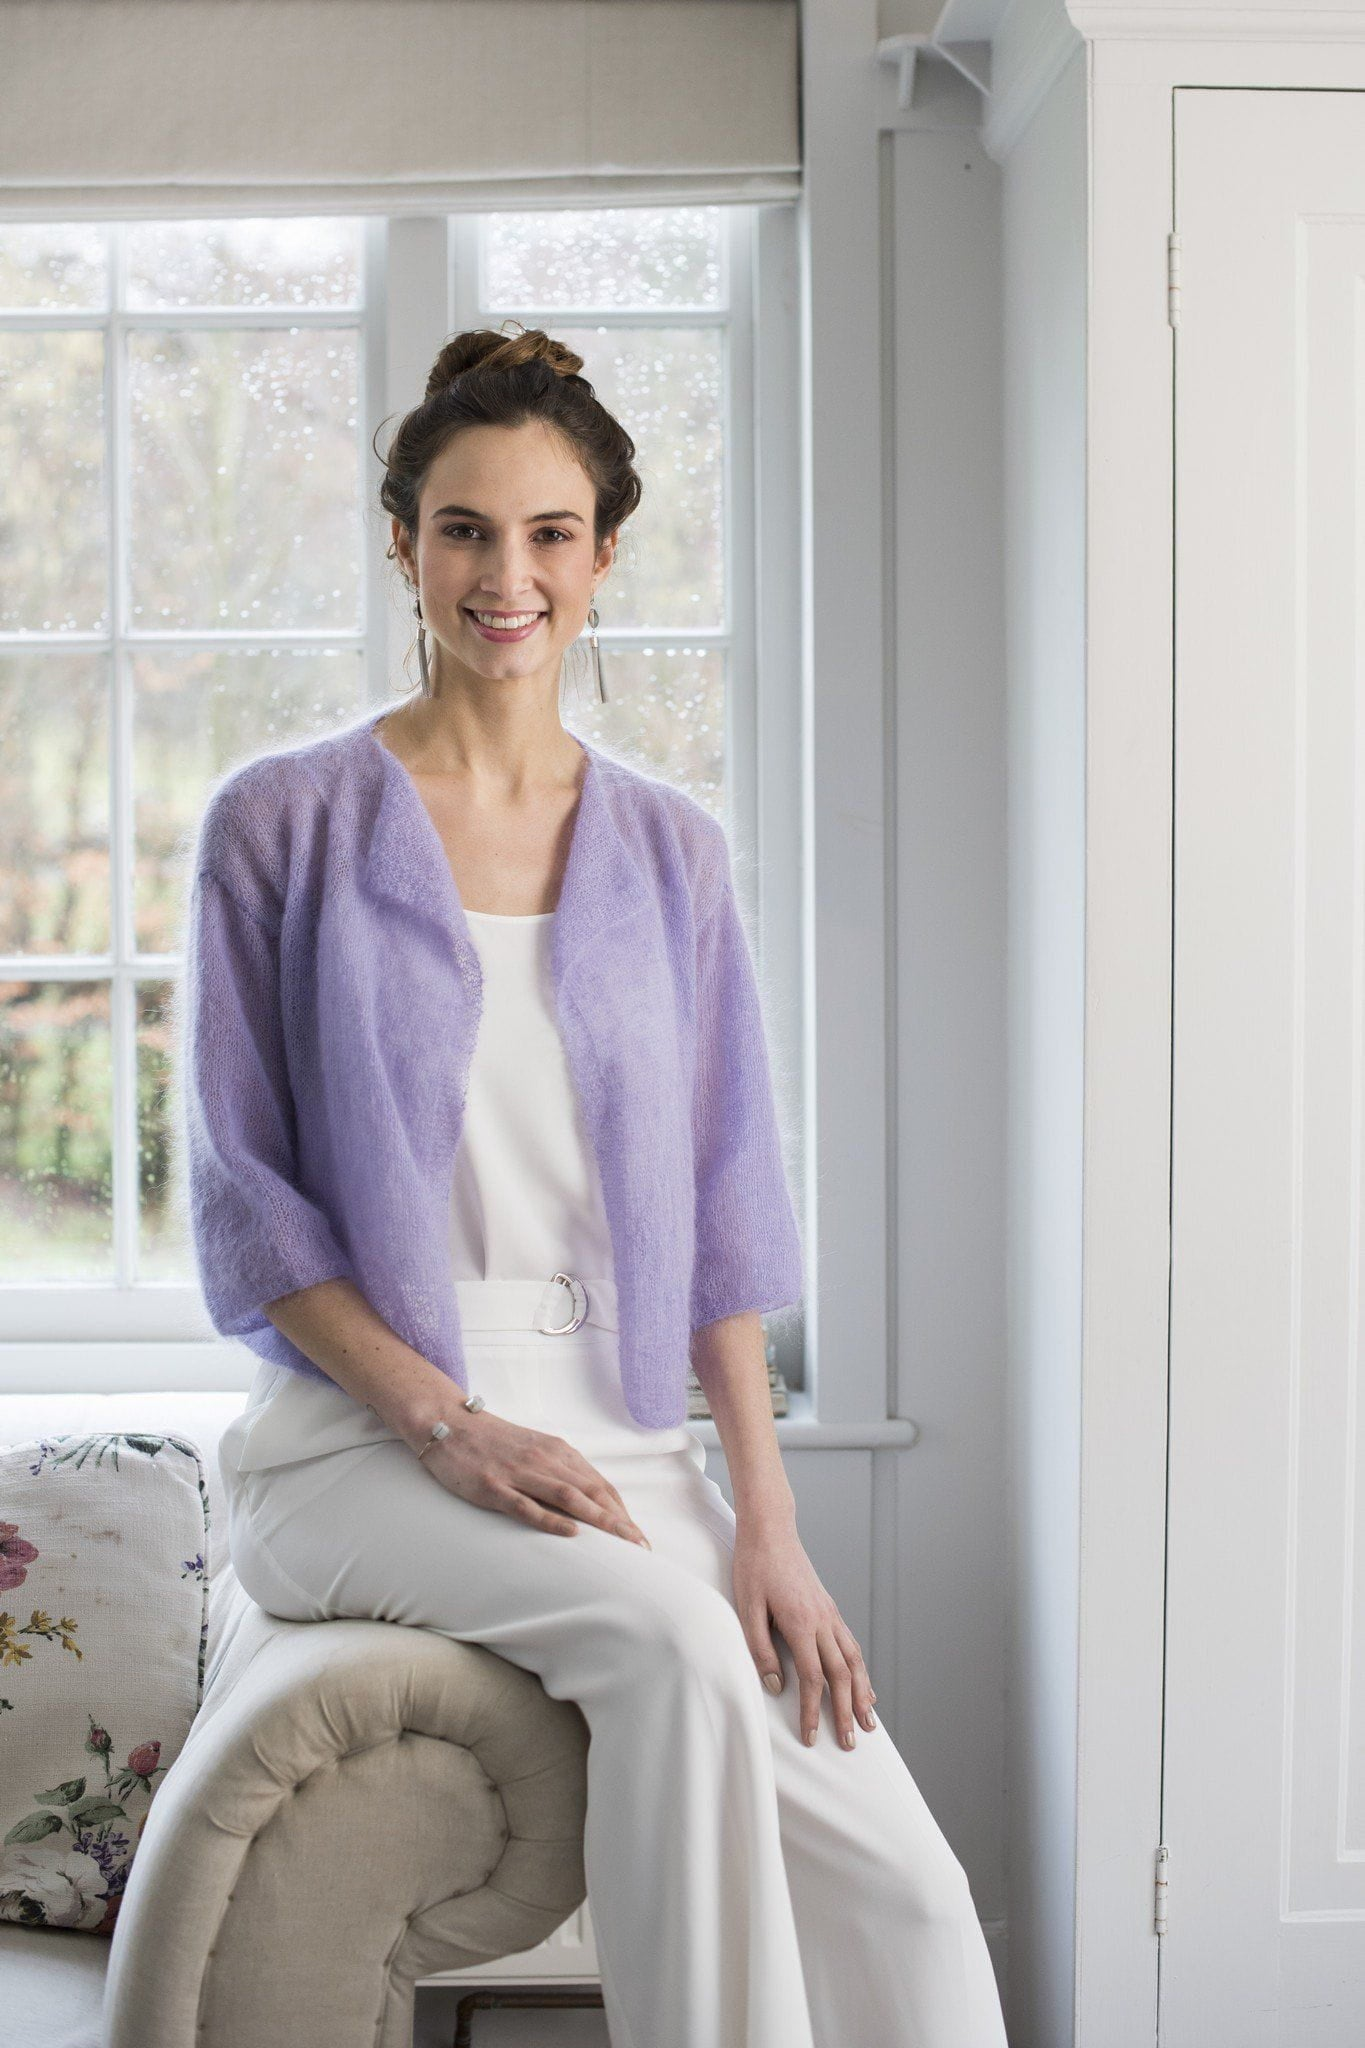 Waterfall Front Mohair Cardigan Knitting Pattern – The Knitting Network